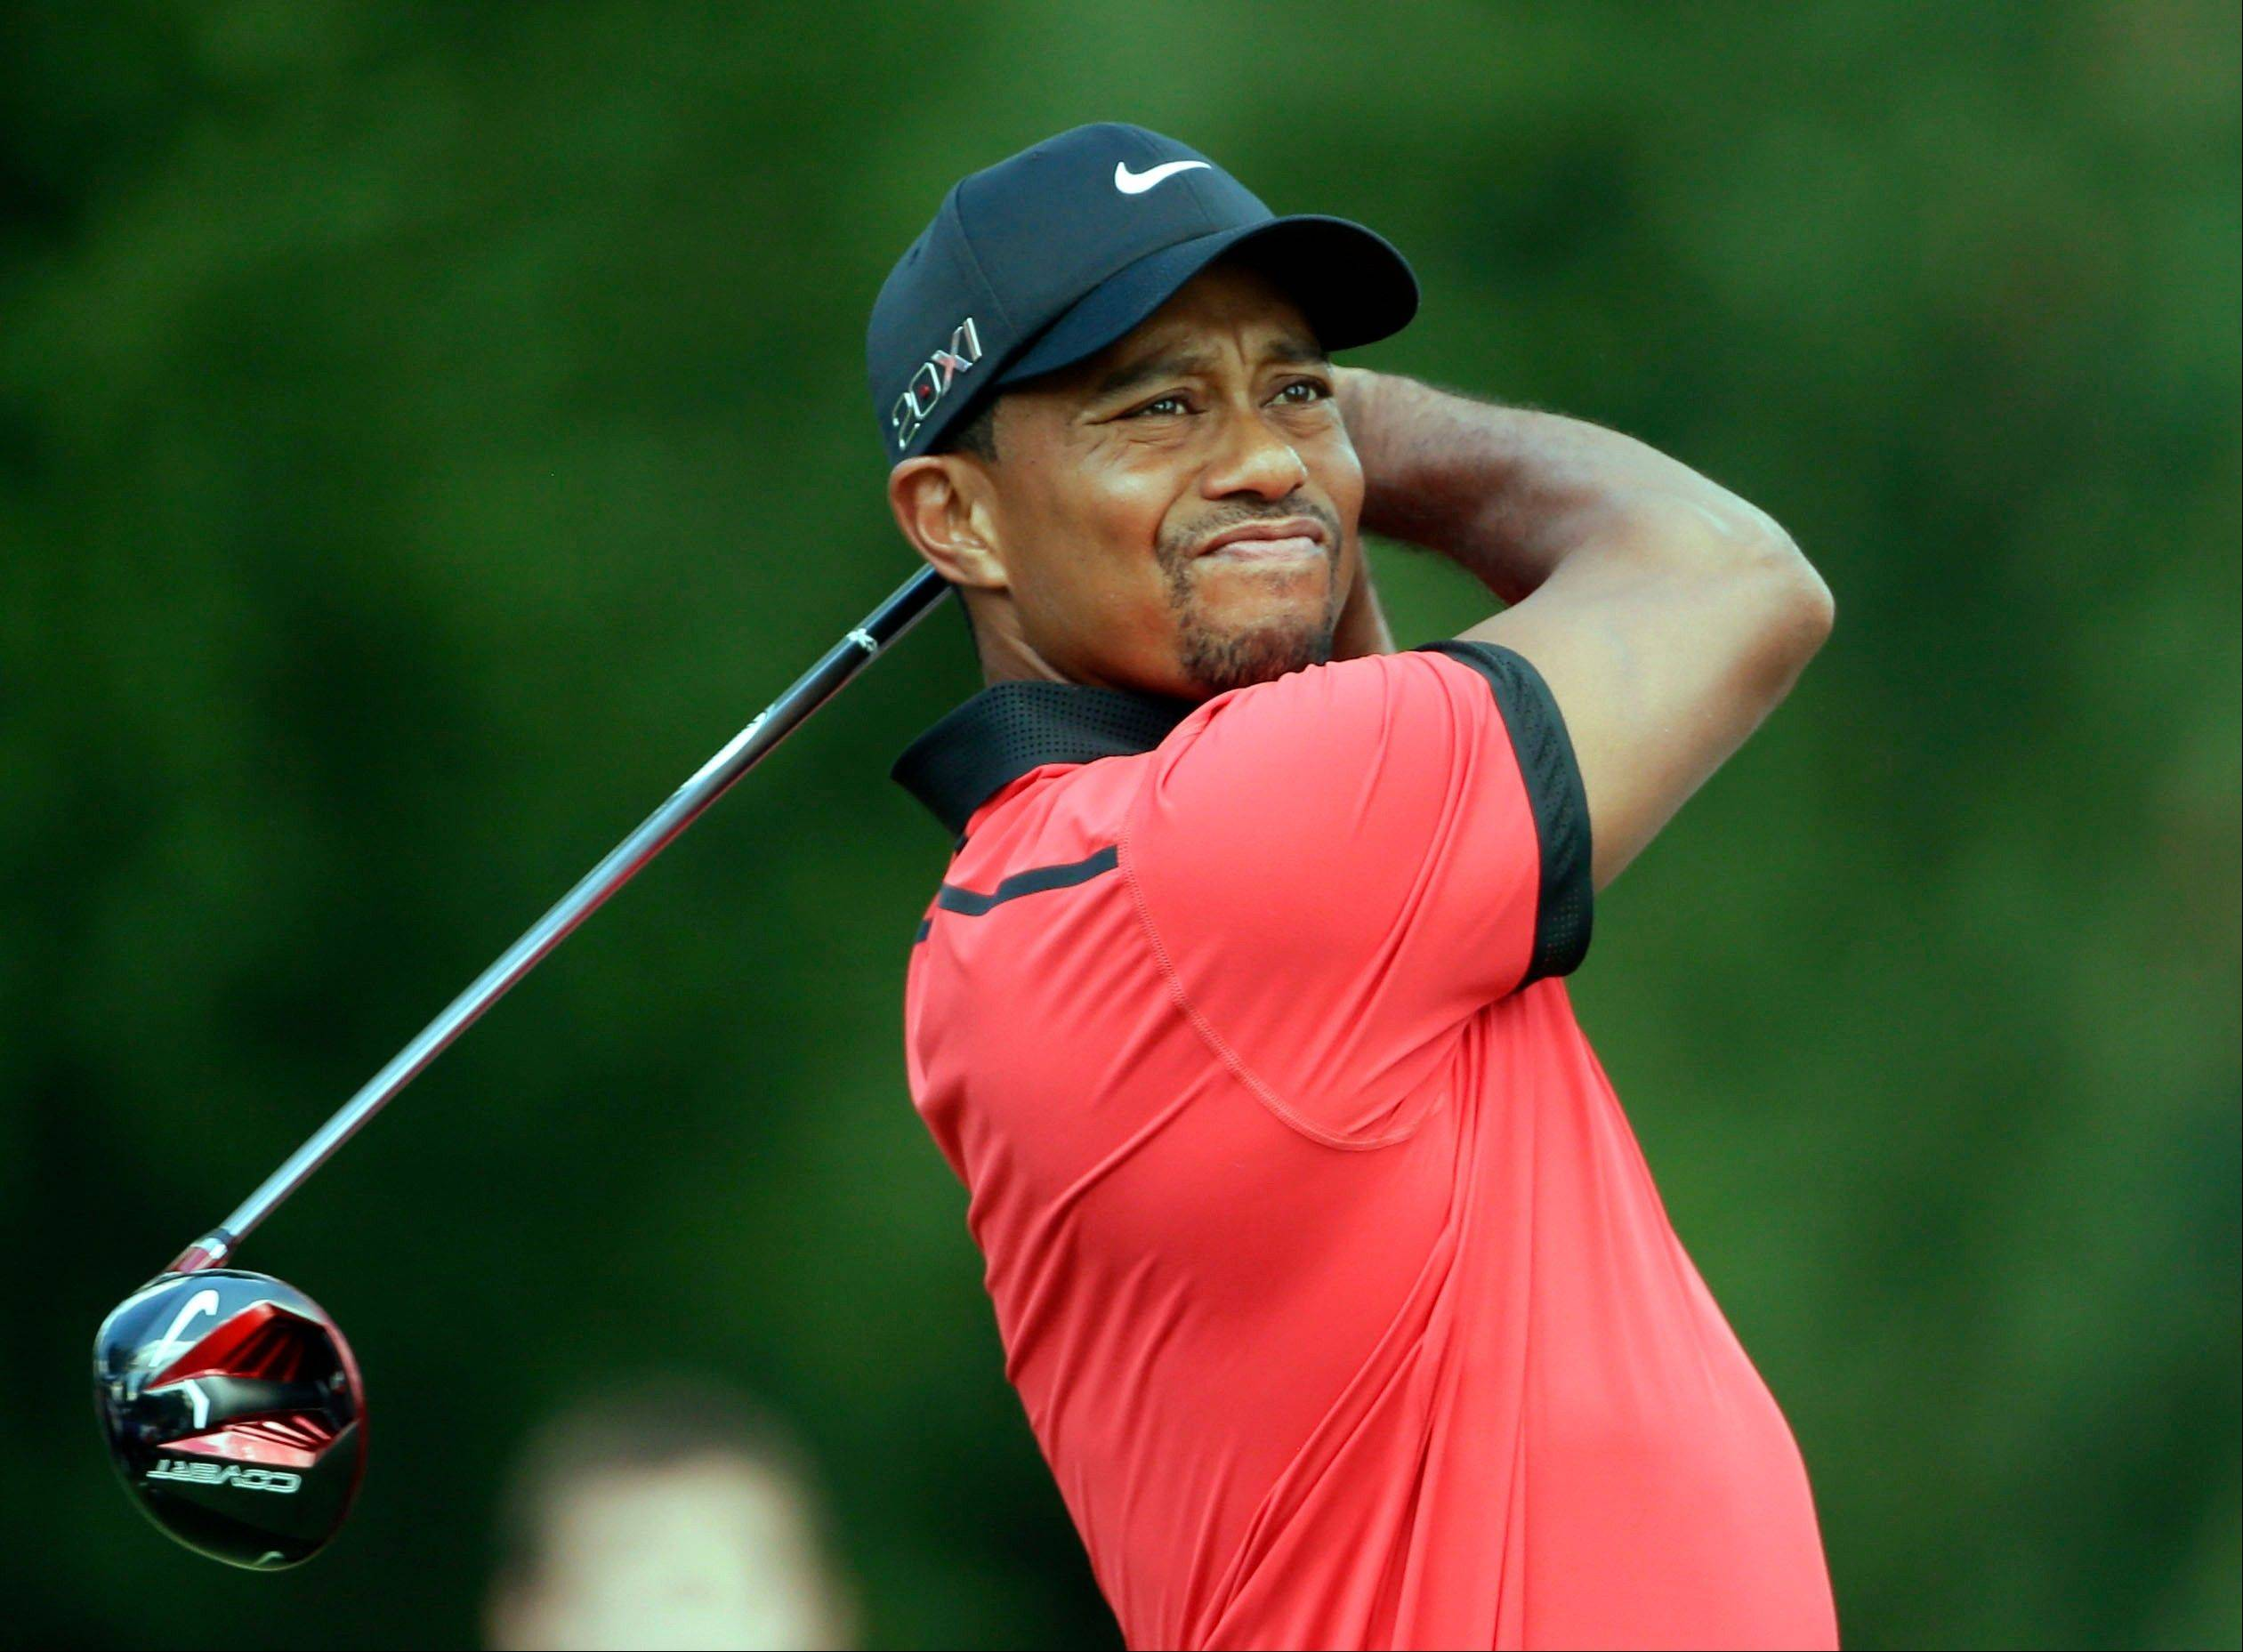 Tiger Woods watches his tee shot on the fourth hole during the Sunday's round of the Bridgestone Invitational at Firestone Country Club in Akron, Ohio.